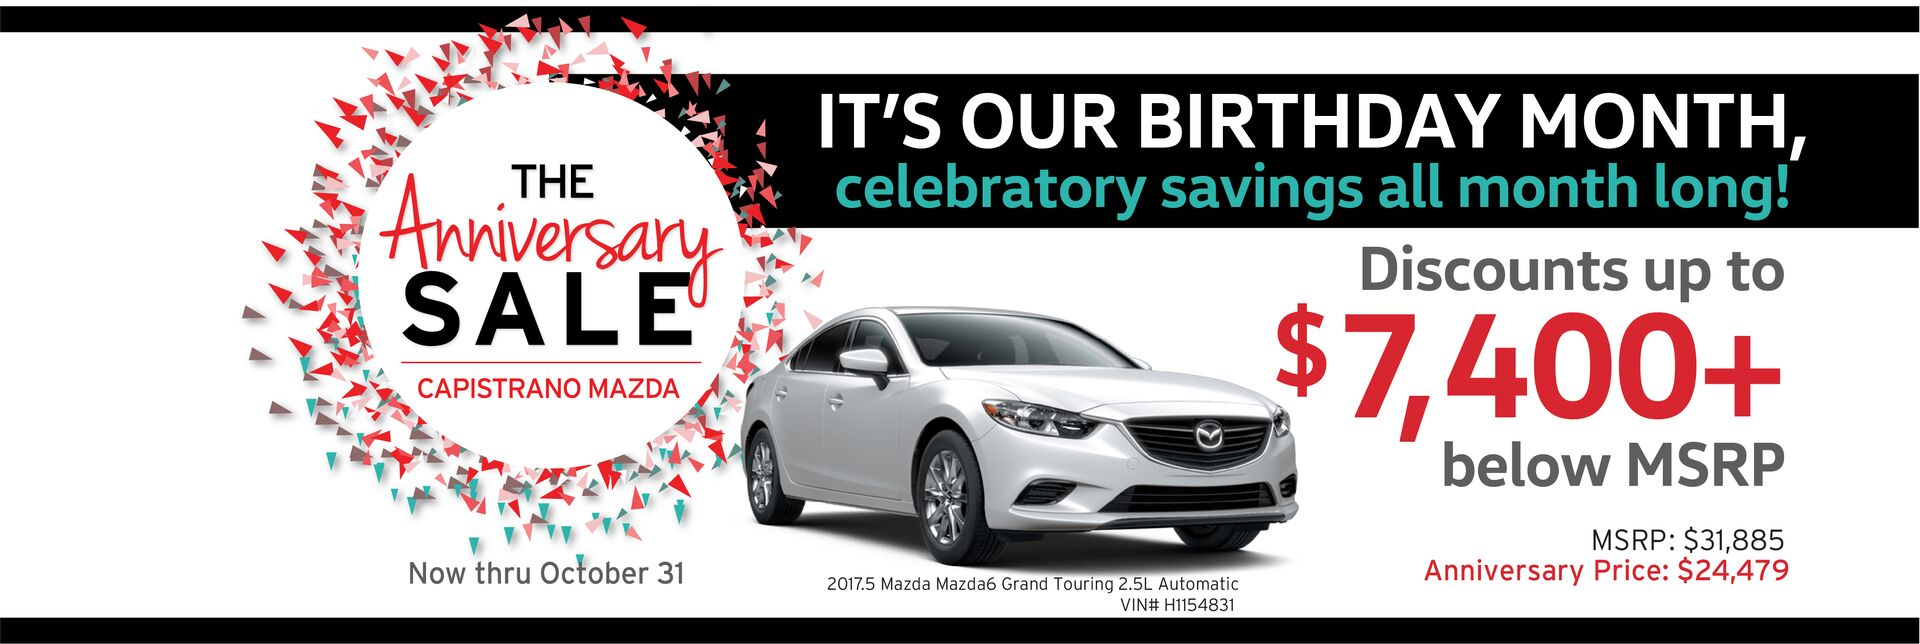 Capistrano Mazda Anniversary Sale With Discounts   Save Up To $7,400+ Below  MSRP